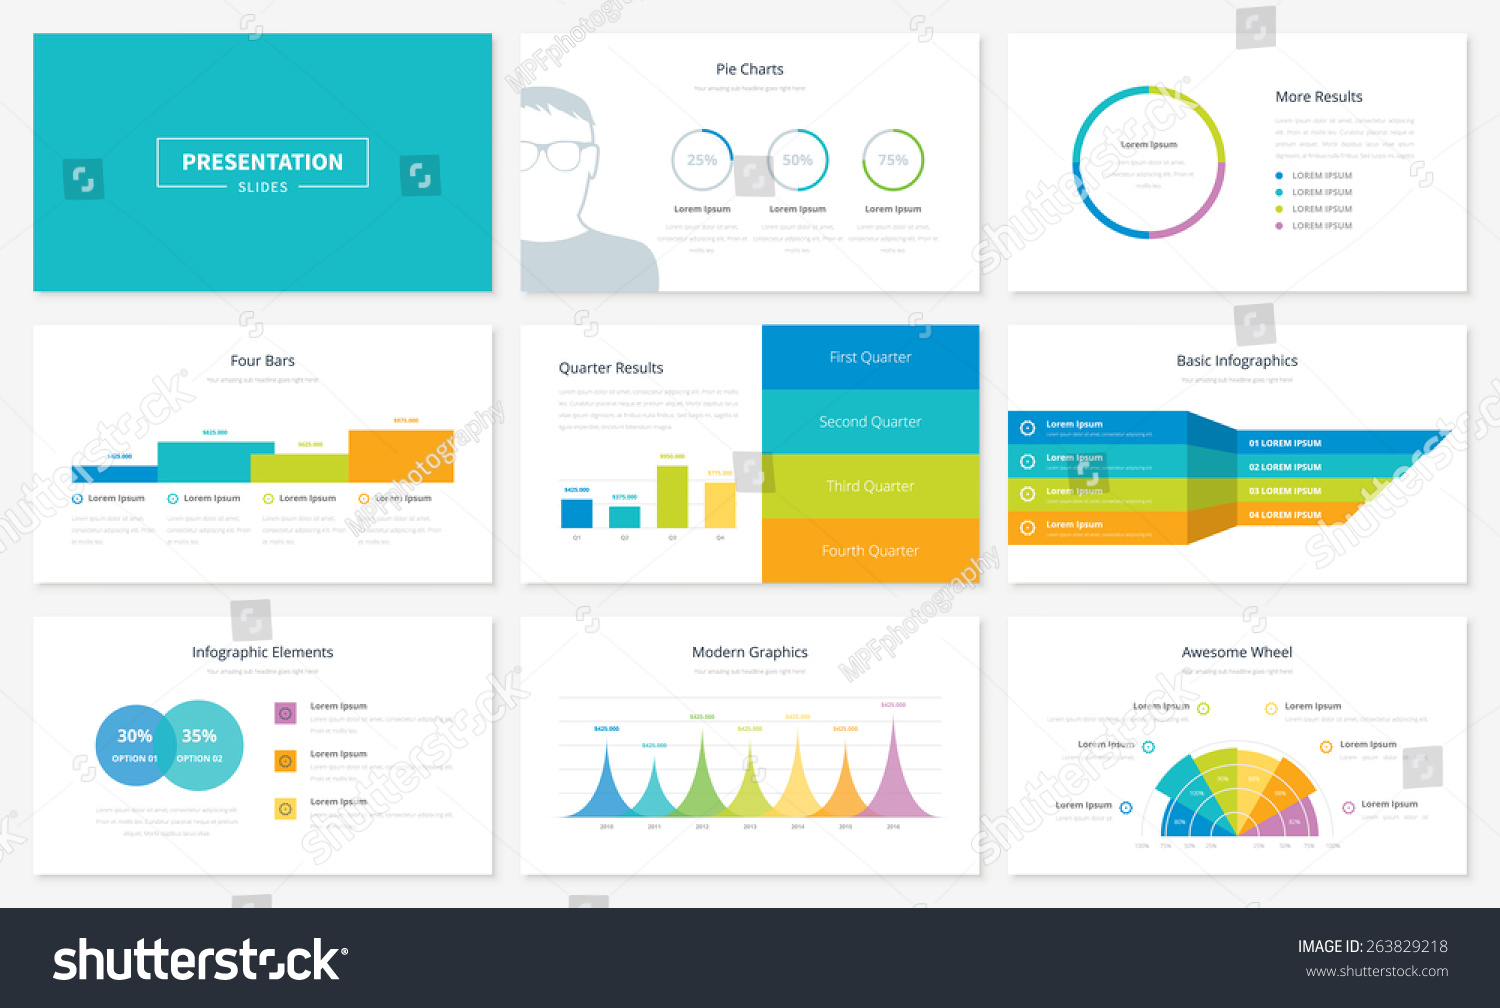 Infographic presentation slide templates and vector brochures for business Big set of modern infographic vector elements for web print magazine flyer brochure media marketing and advertising